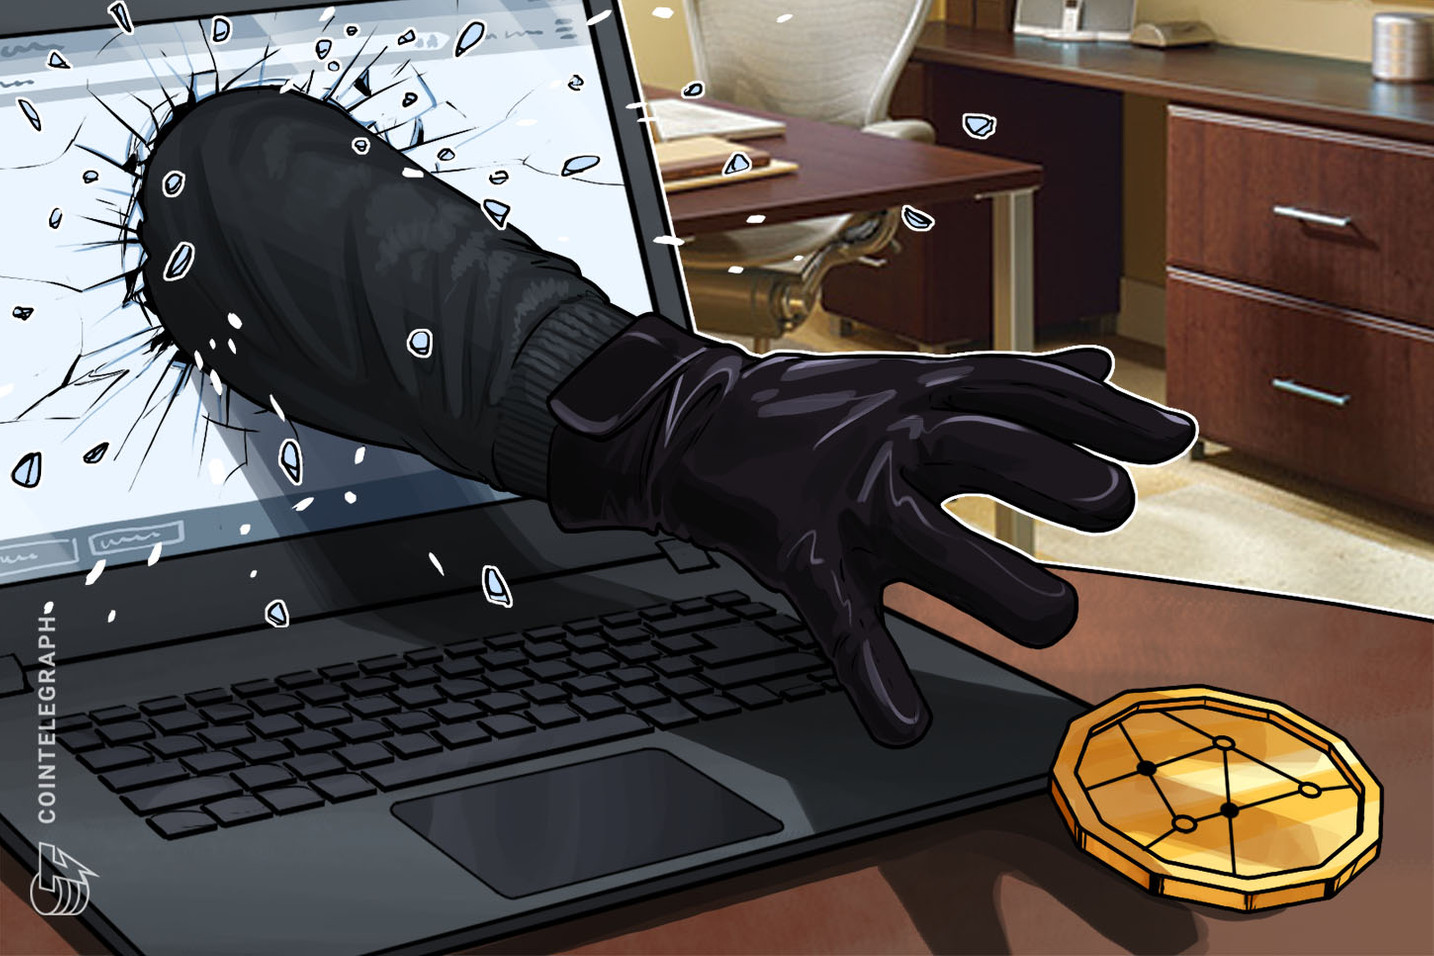 Chainalysis: Two Probably Still Active Groups Account for $1 Billion in Crypto Hacks